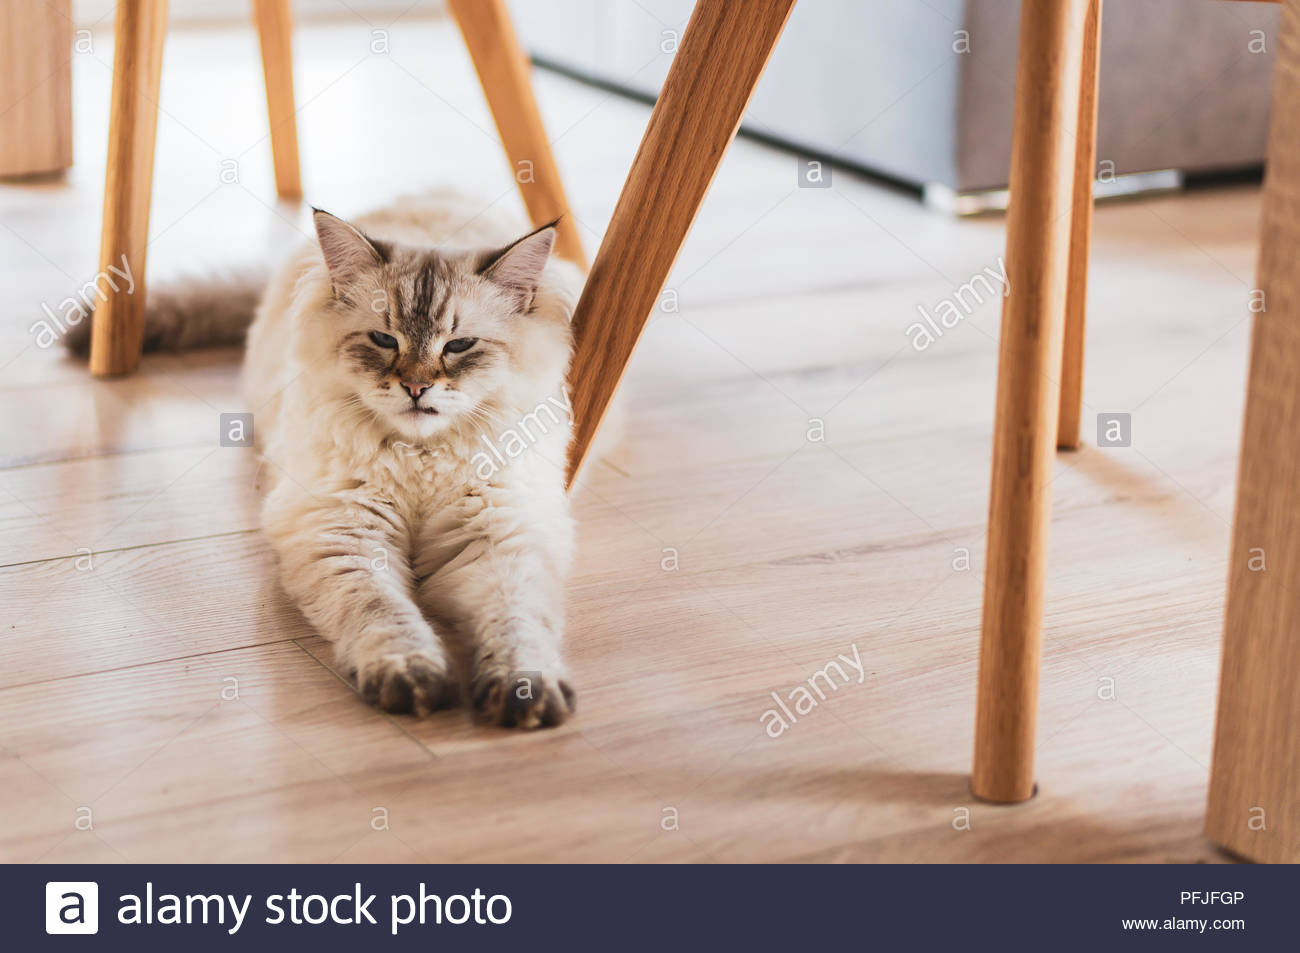 Furry Siberian house cat lying on a floor in a house - Stock Image